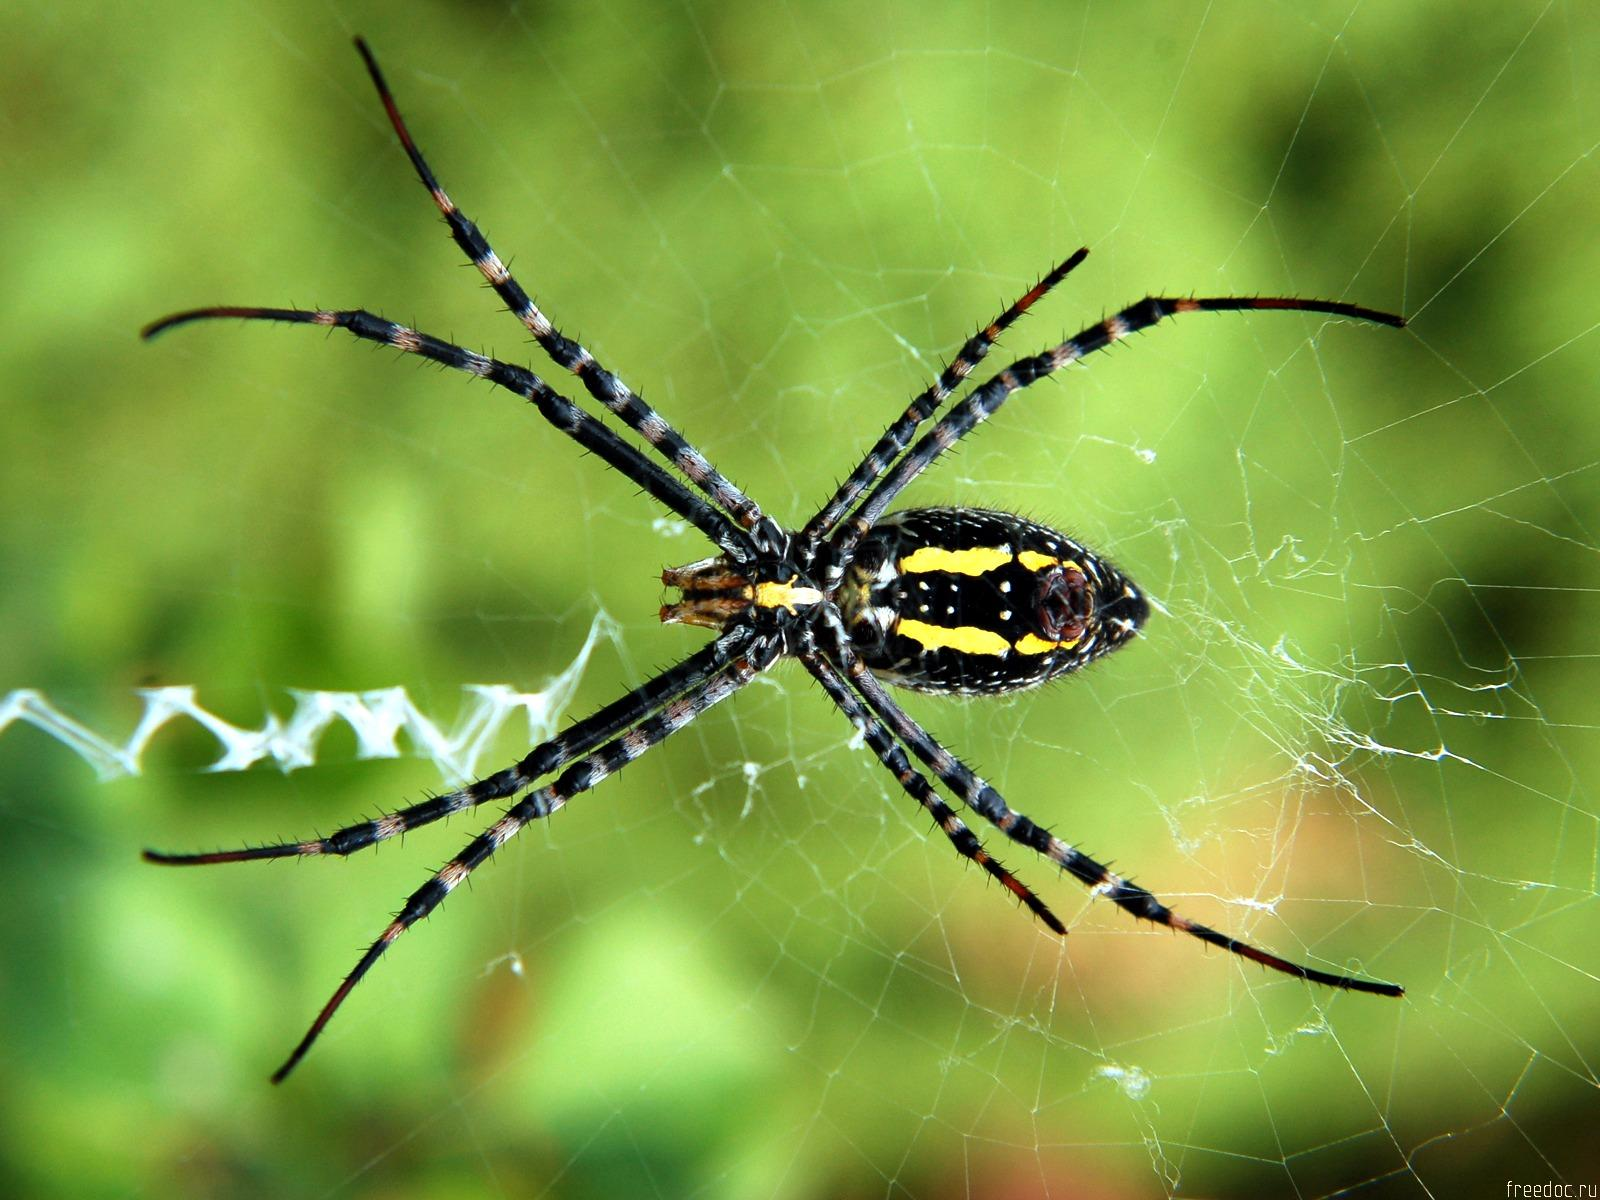 Spider - the image Wallpapers - spider, web, green, grass, forest, forest spider